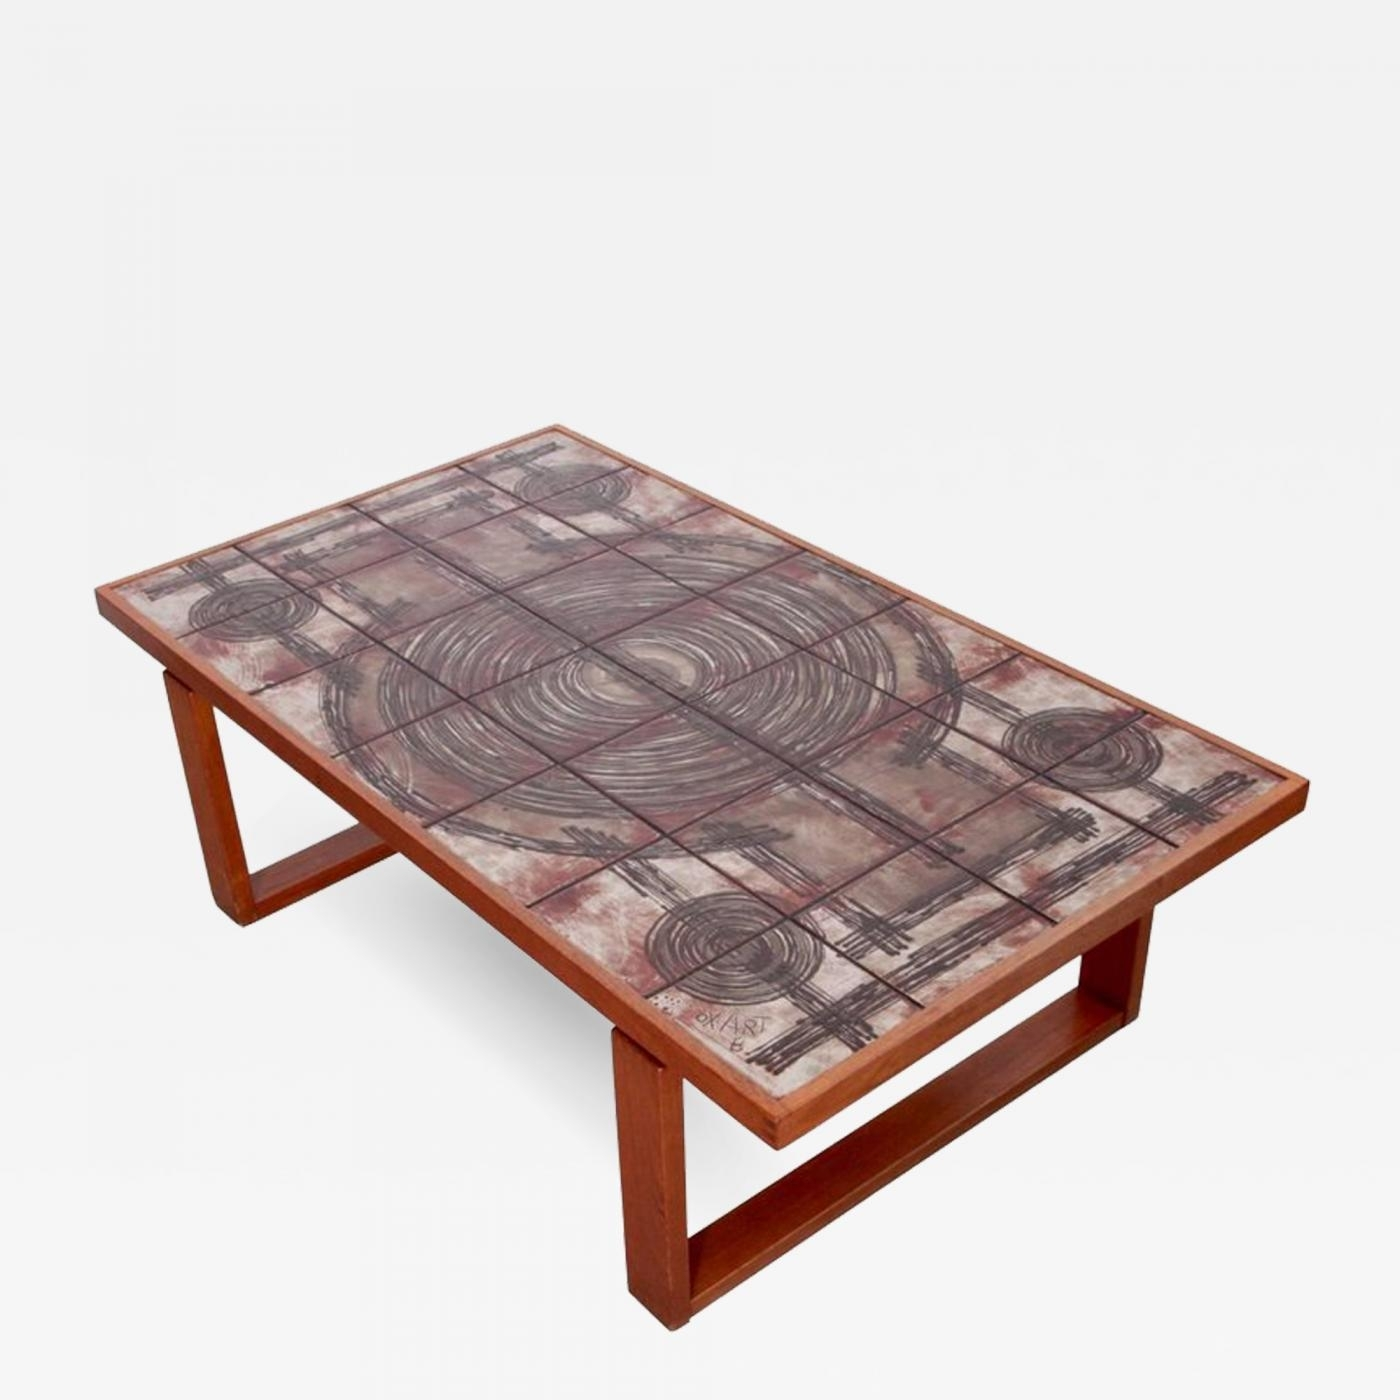 Ox-Art - Large Danish Teak Art Sofa Or Coffee Tableox-Art with regard to Large Teak Coffee Tables (Image 22 of 30)